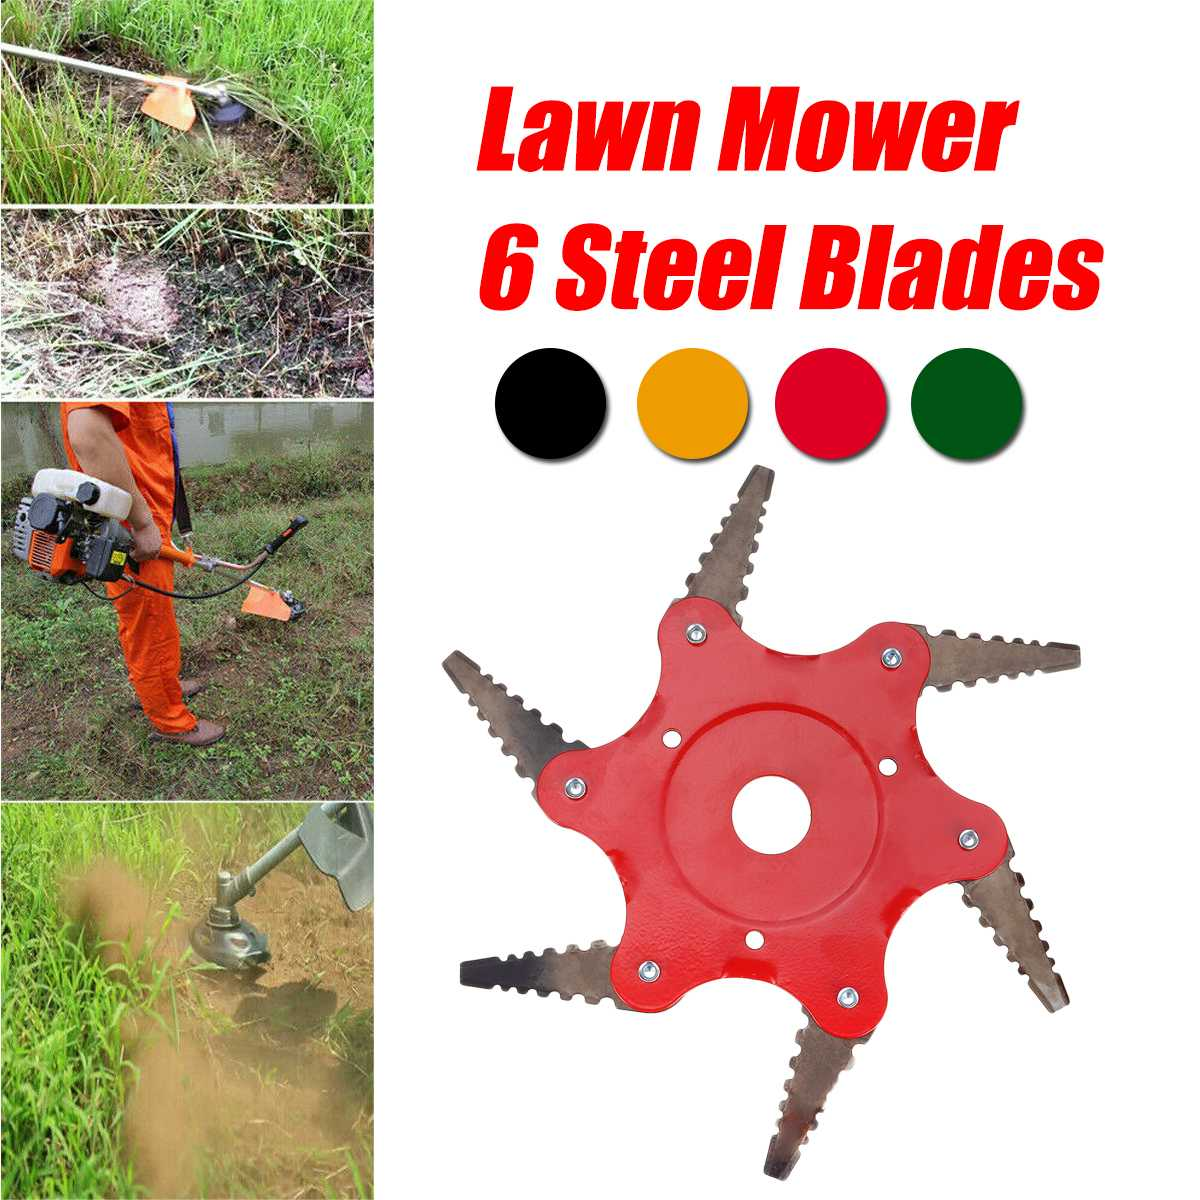 6 Tooth Garden Lawn Mower Blade Manganese Steel Grass Trimmer Brush Cutter Head